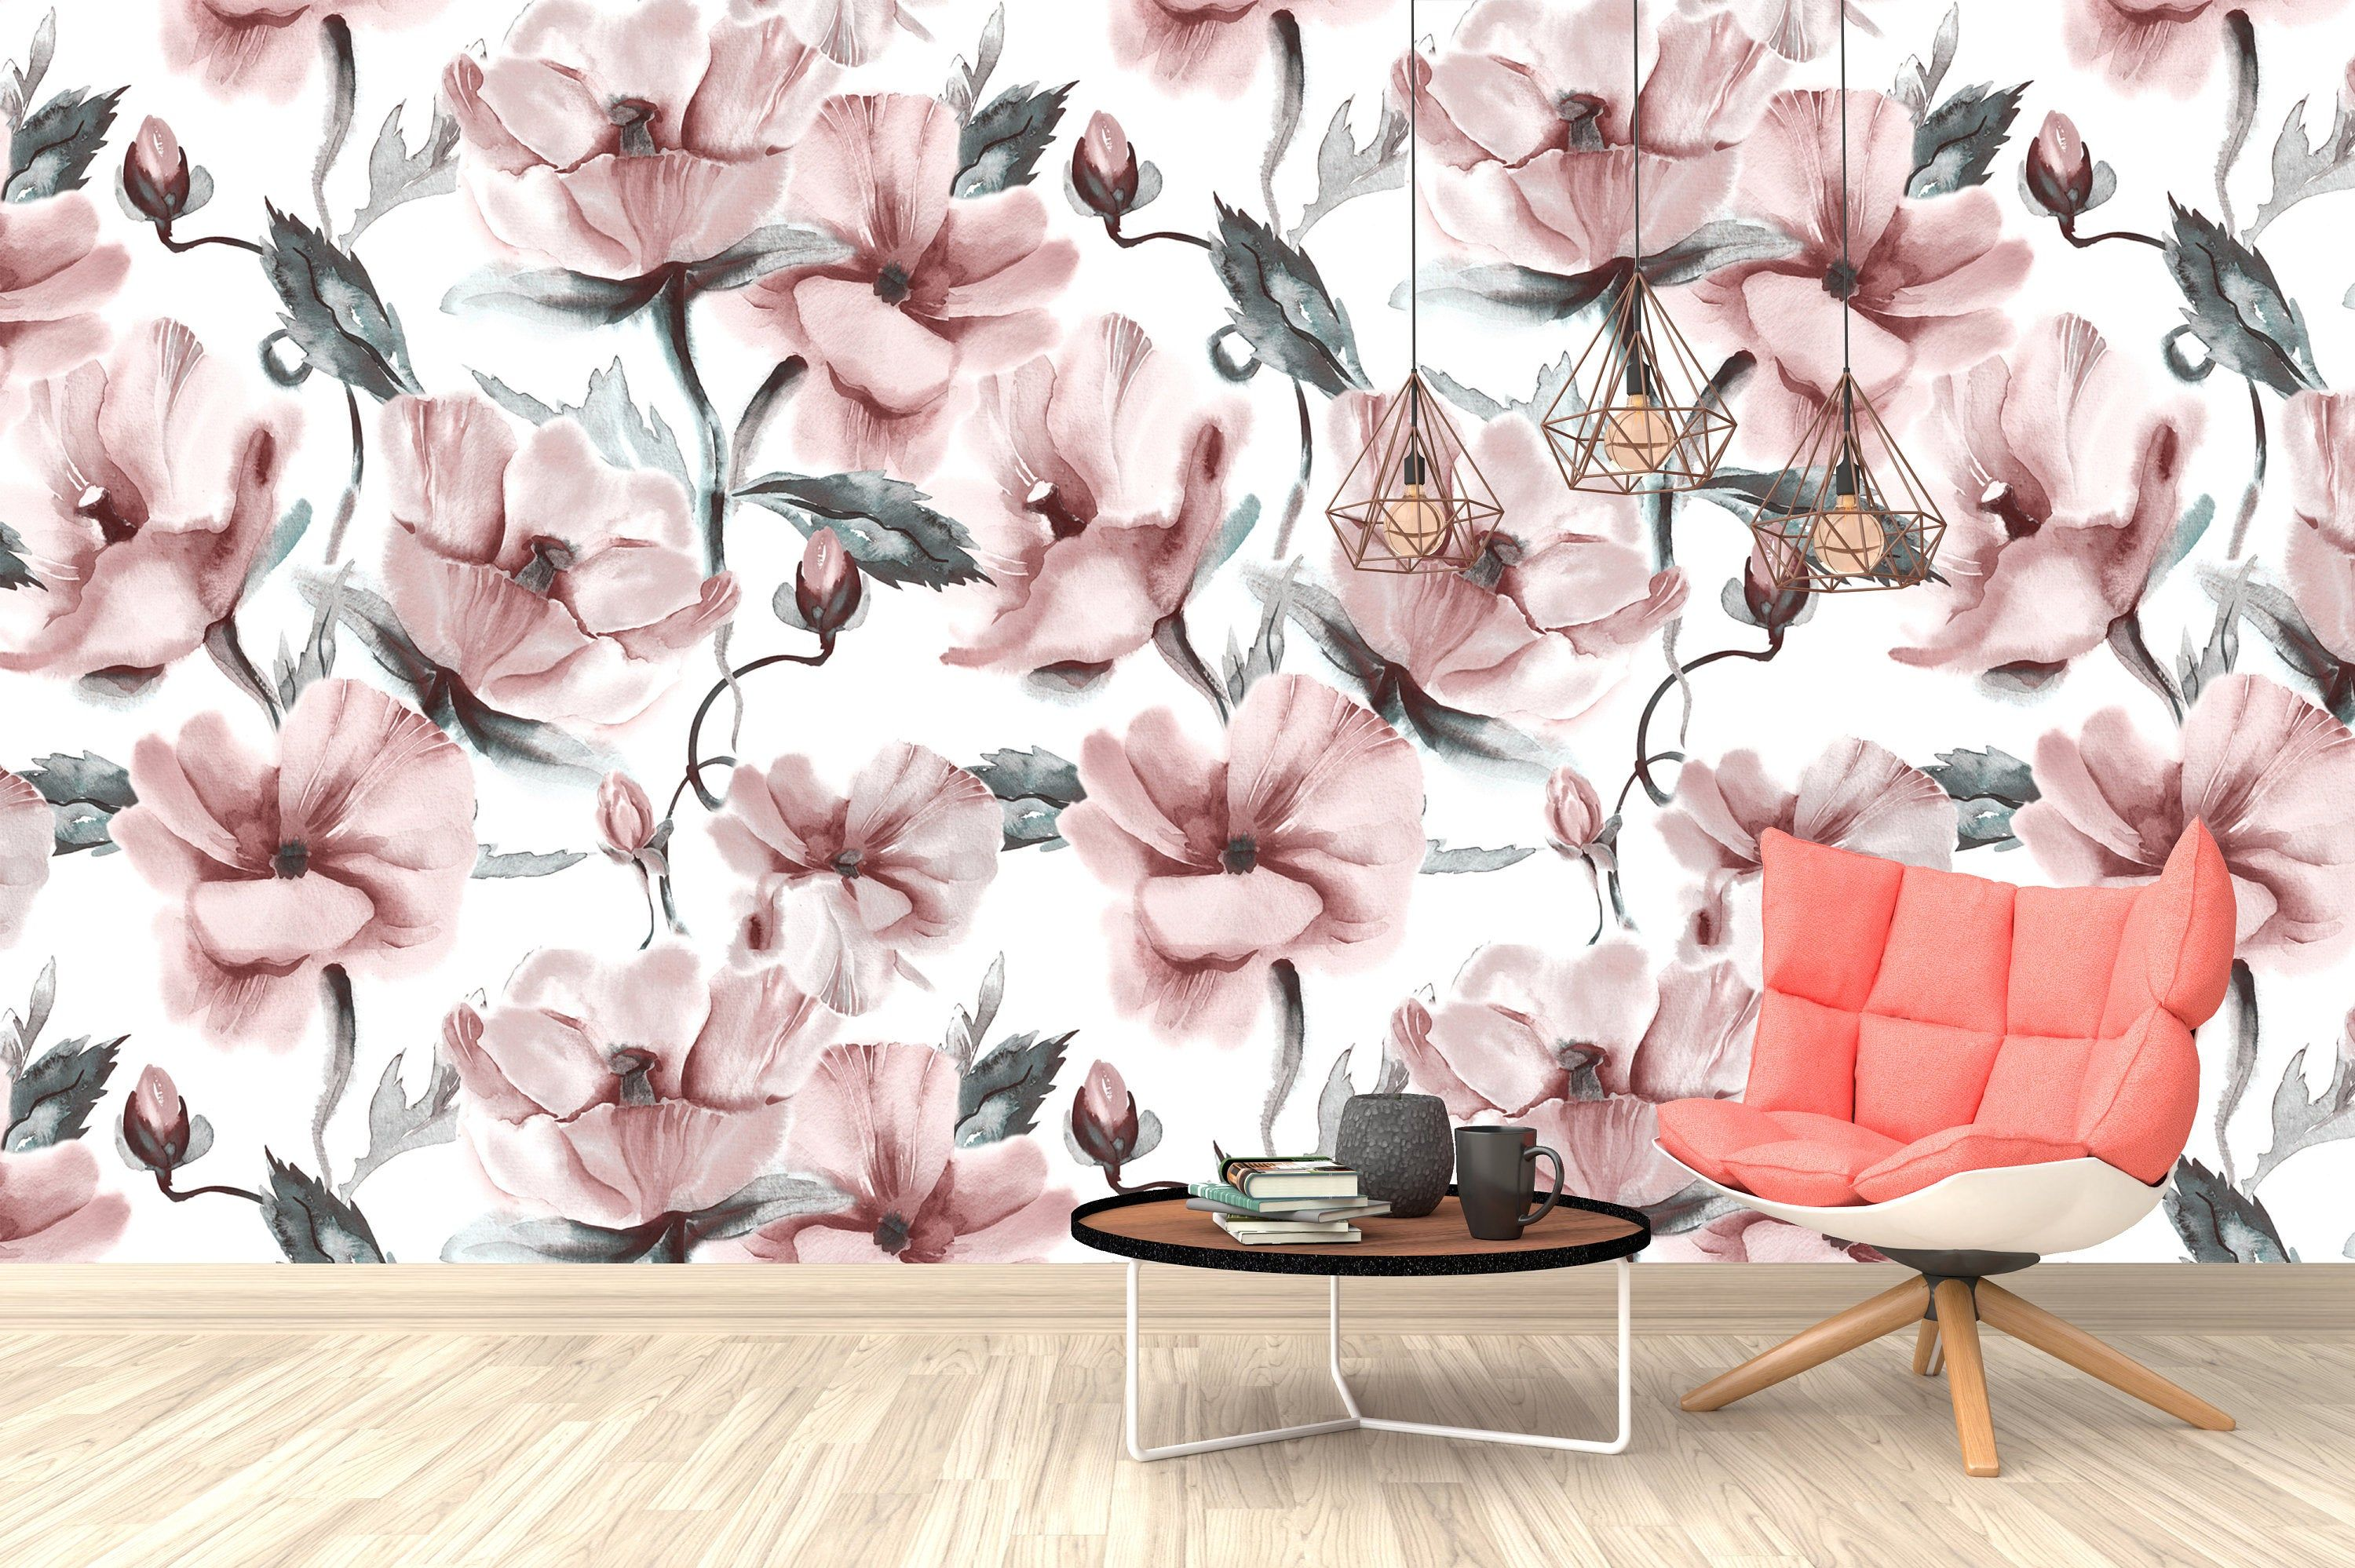 Pink Roses Flowers Floral Wallpaper Self Adhesive Peel Stick Wall Sticker Wall Decoration Minimalistic Scandinavian Design Removable Dark Red Roses Peel And Stick Wallpaper Red Roses Wallpaper